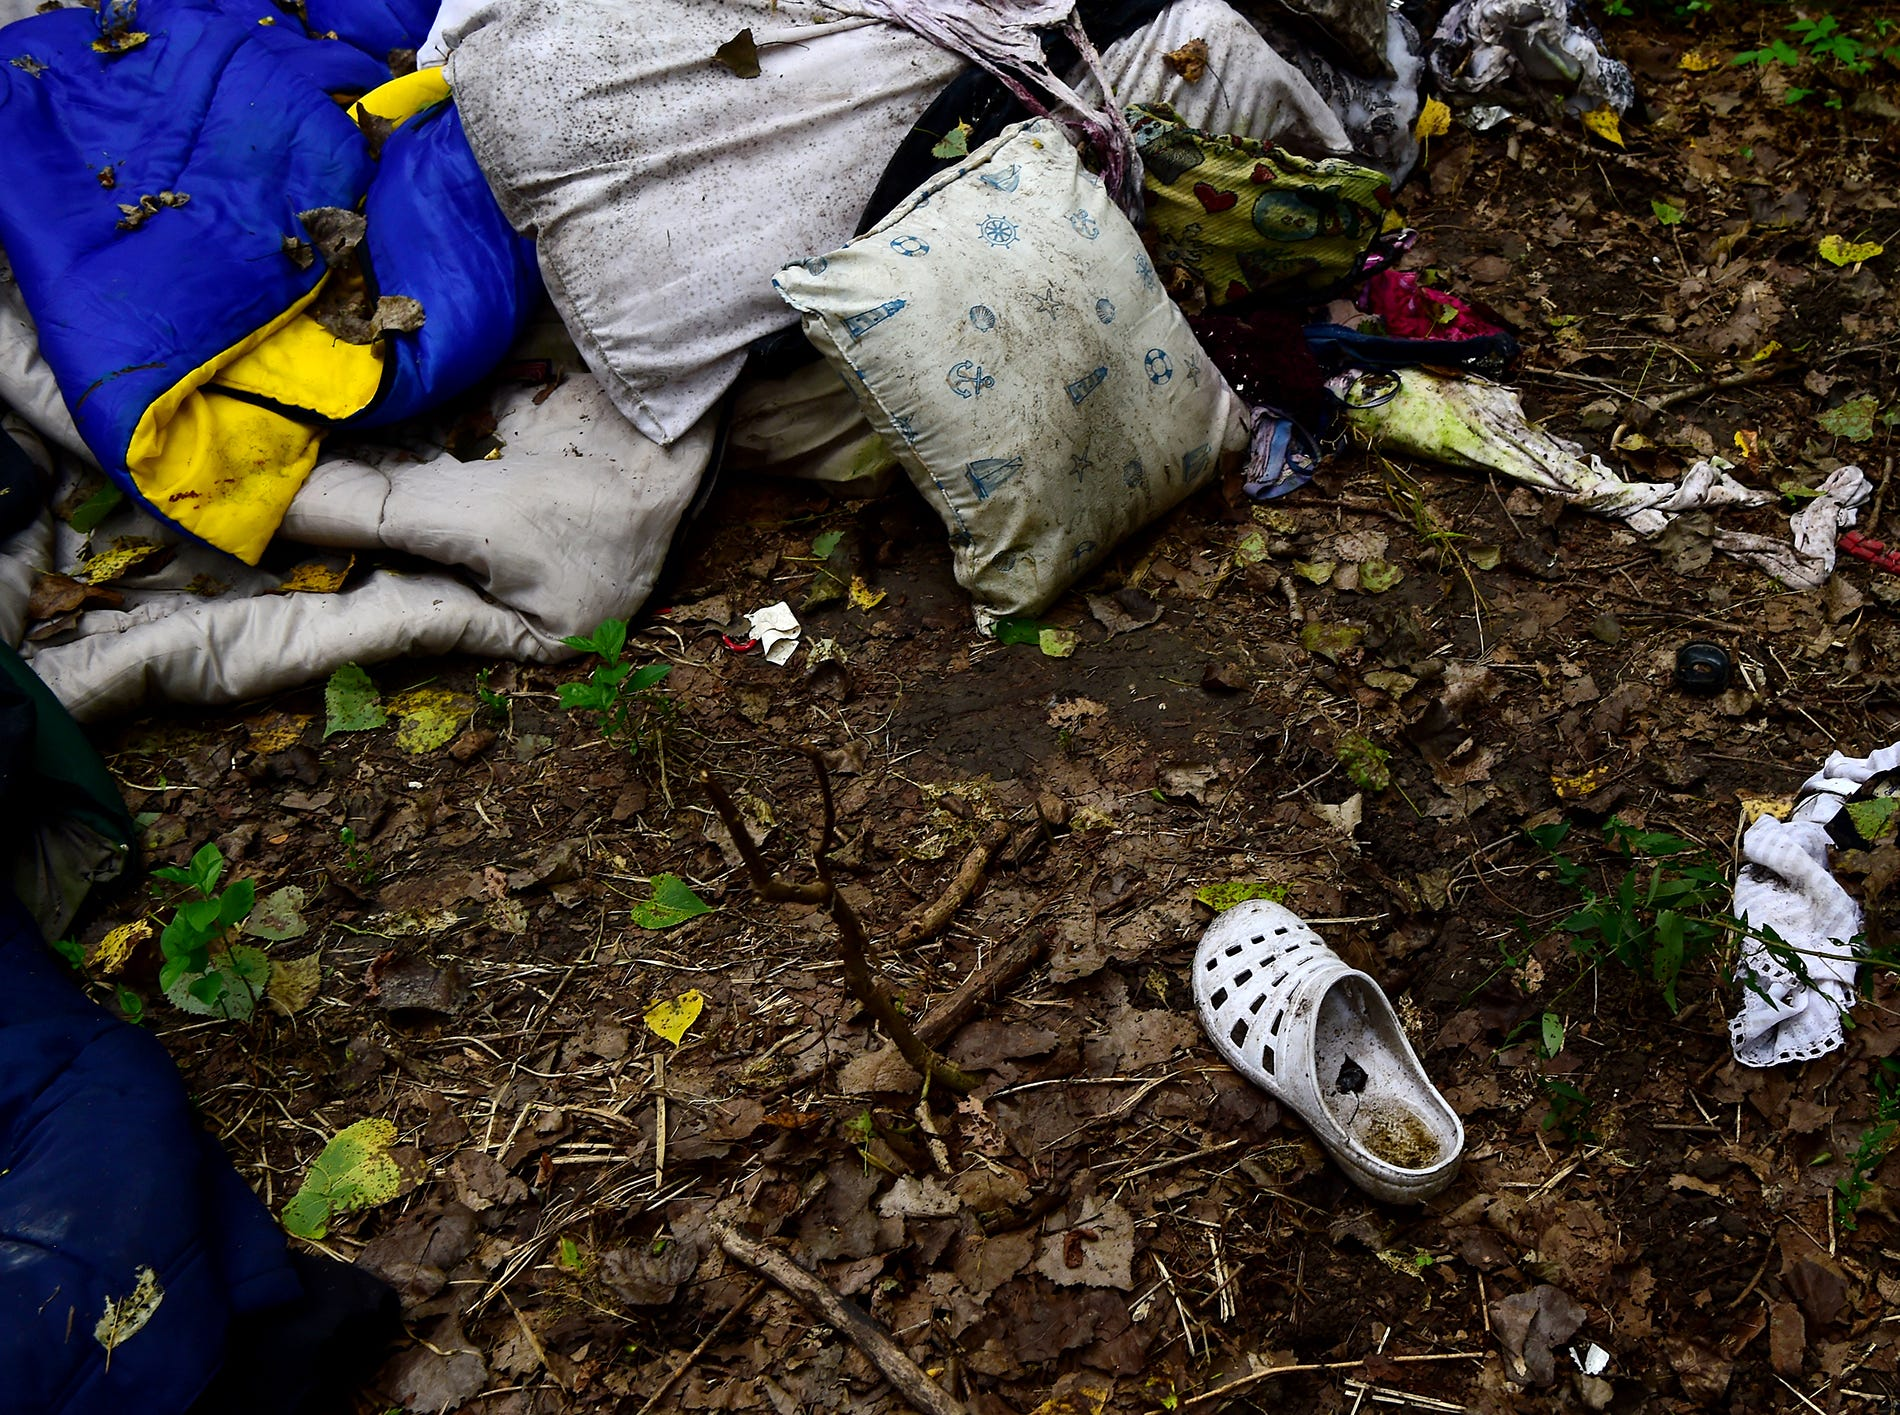 Shoes, pillows and clothes are among the belongings strewn in The Jungle in Ithaca, August 31, 2018. Located behind the shopping centers along Rt. 13, The Jungle is home to dozens of homeless people who live in tents and makeshift shacks.